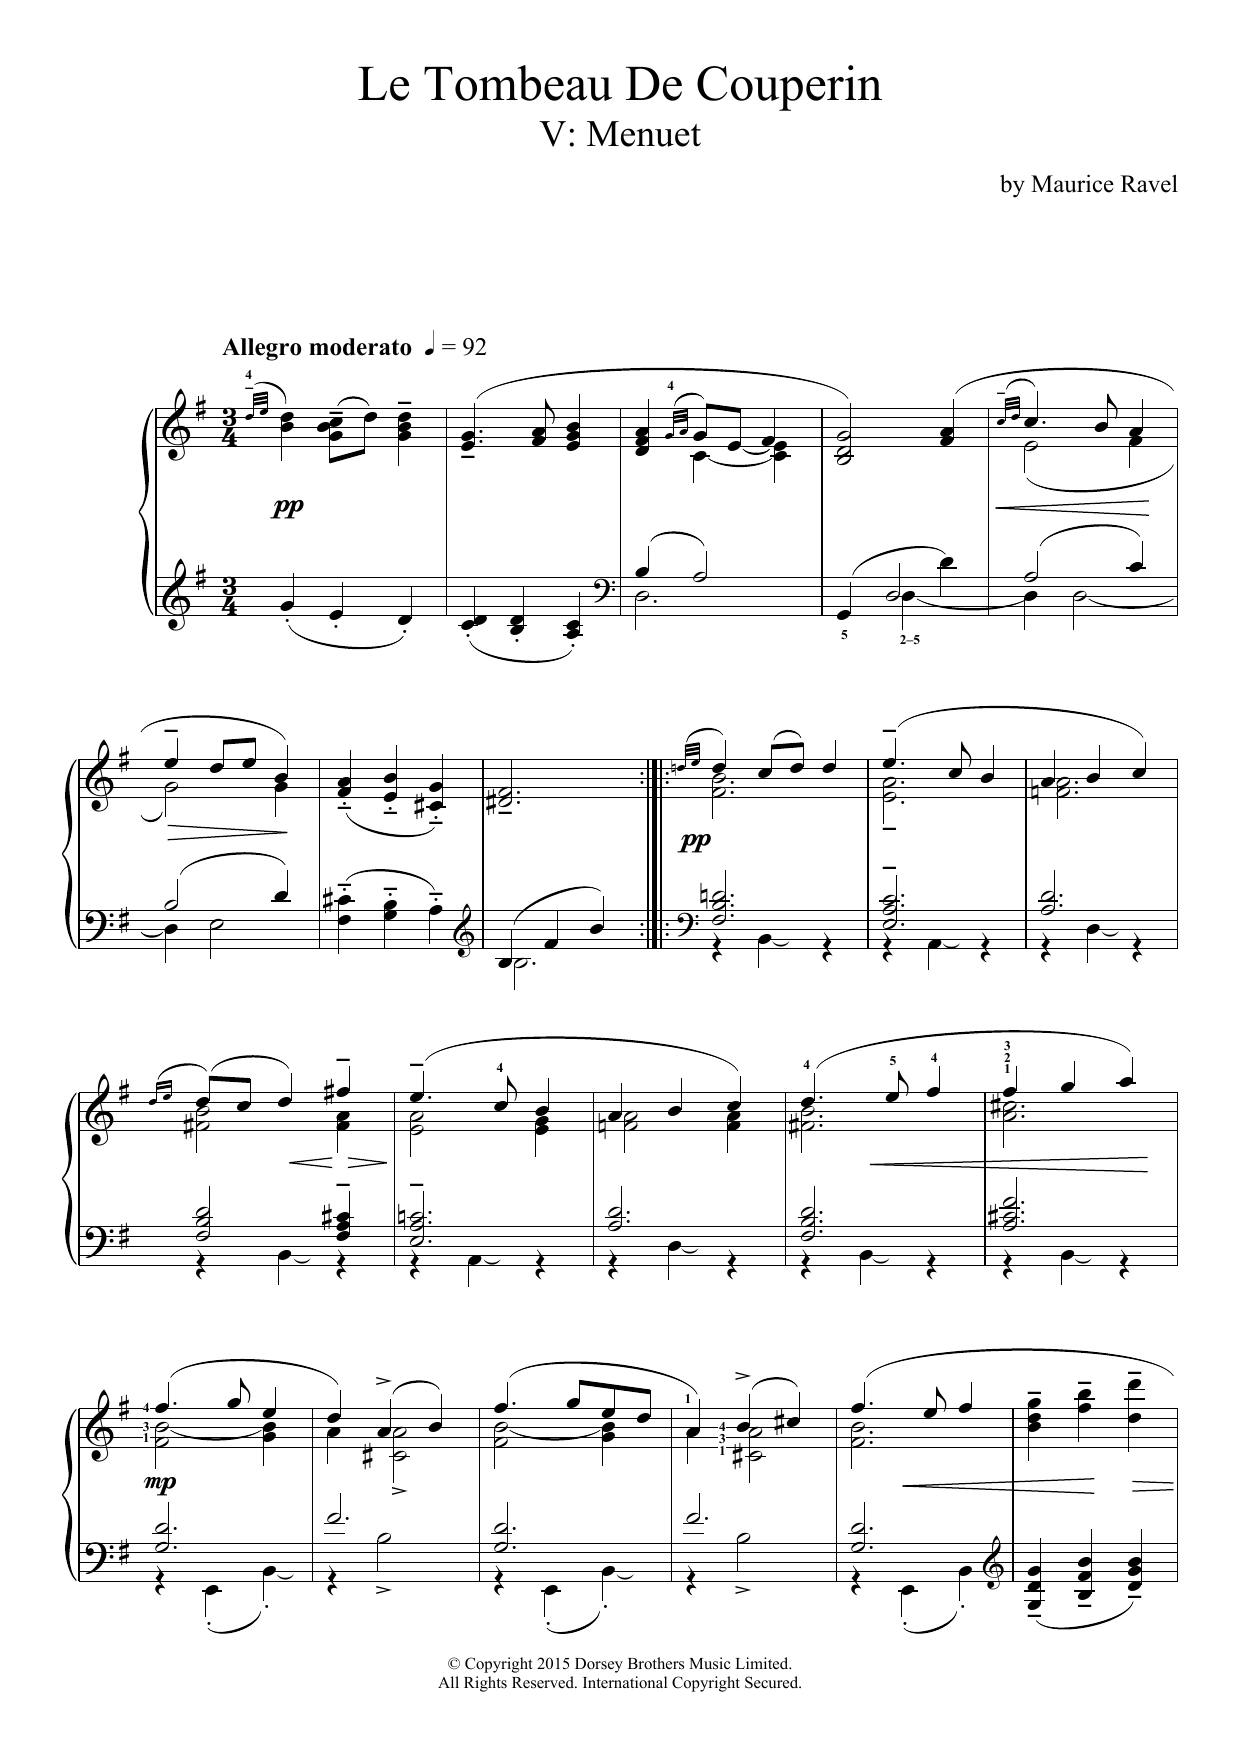 Maurice Ravel Le Tombeau De Couperin - V. Menuet sheet music preview music notes and score for Piano including 5 page(s)